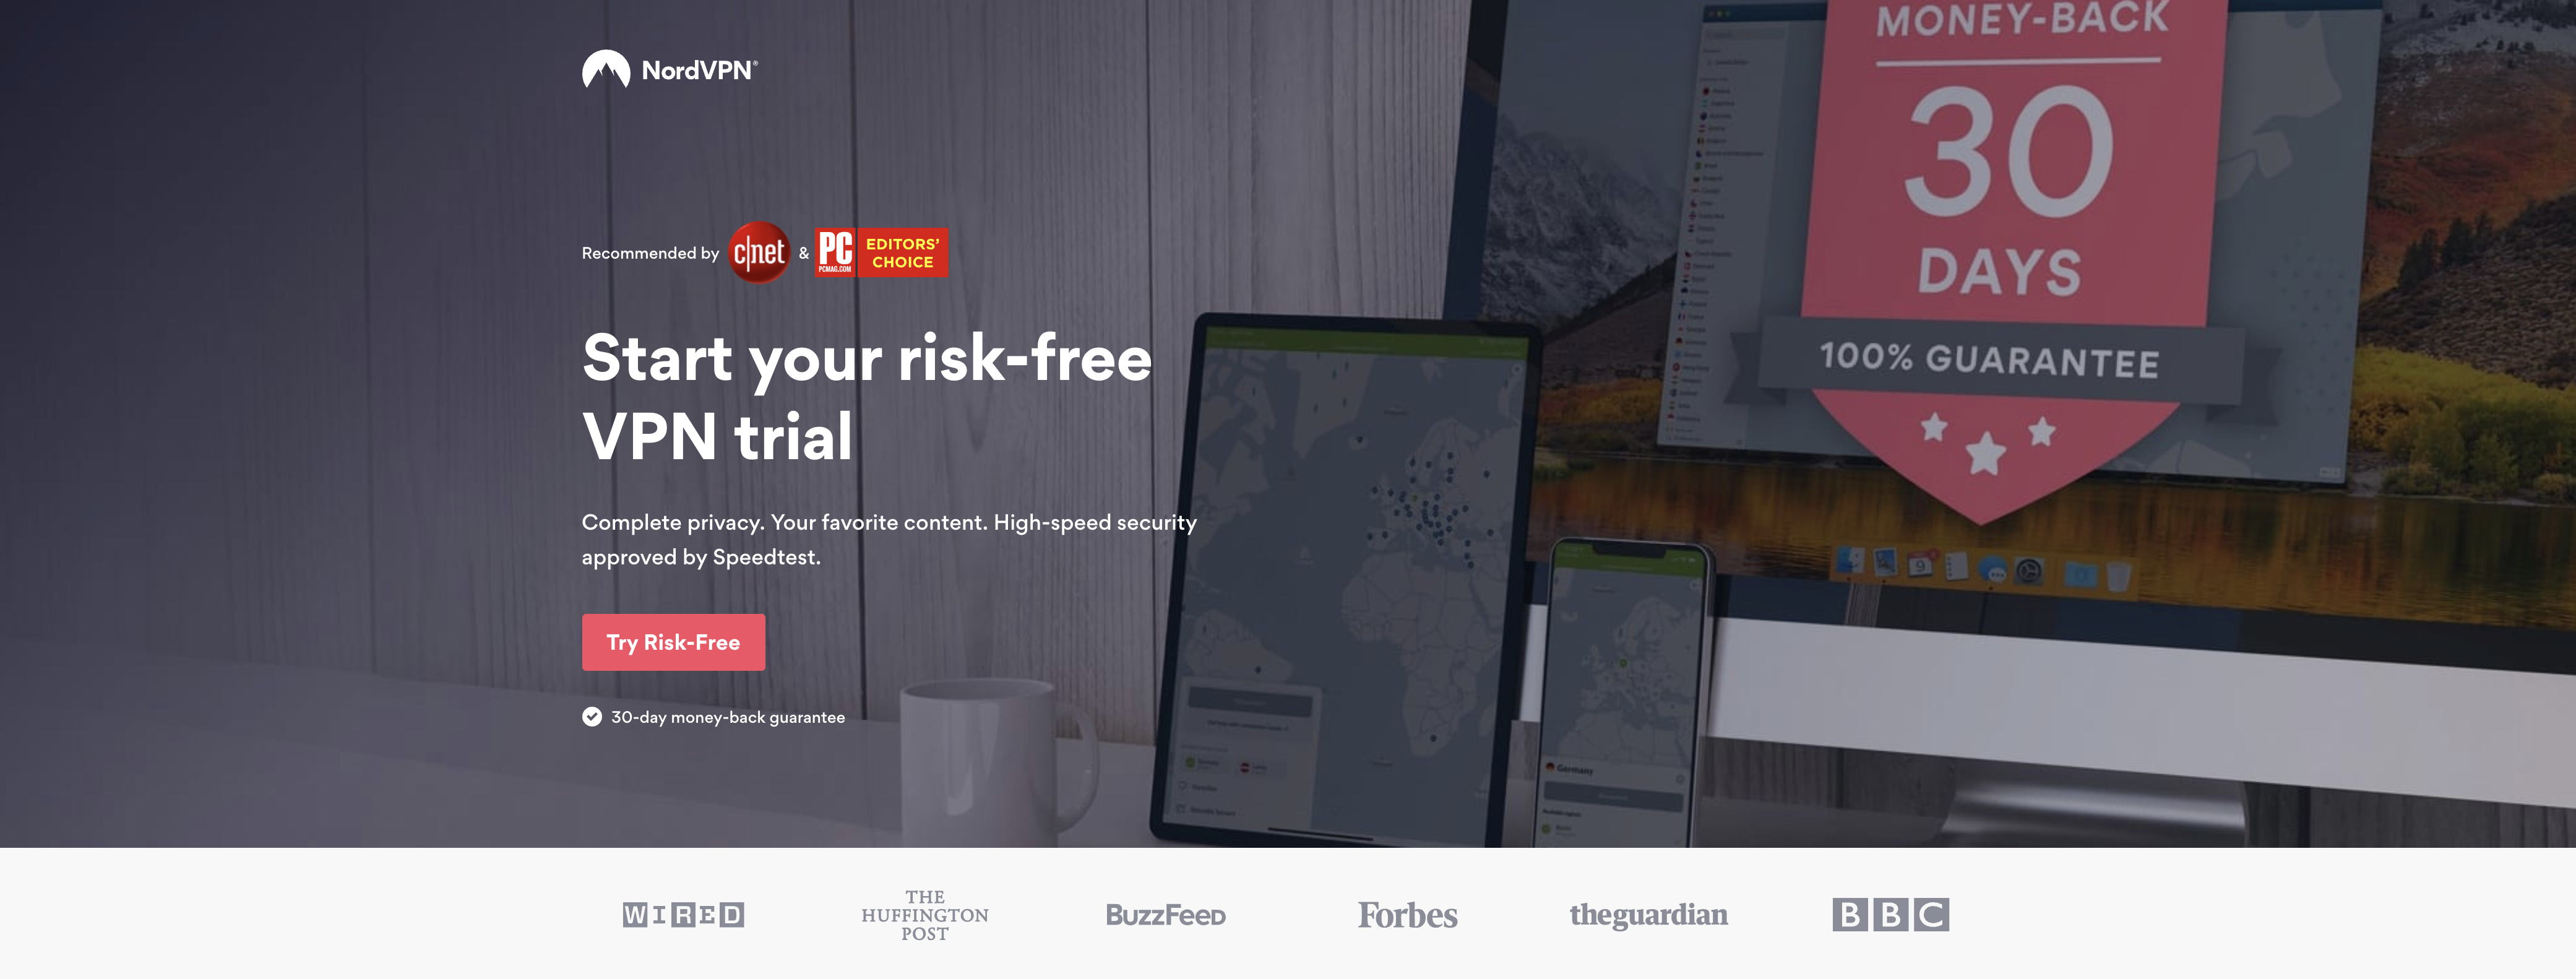 NordVPN Main Page for Free Trial